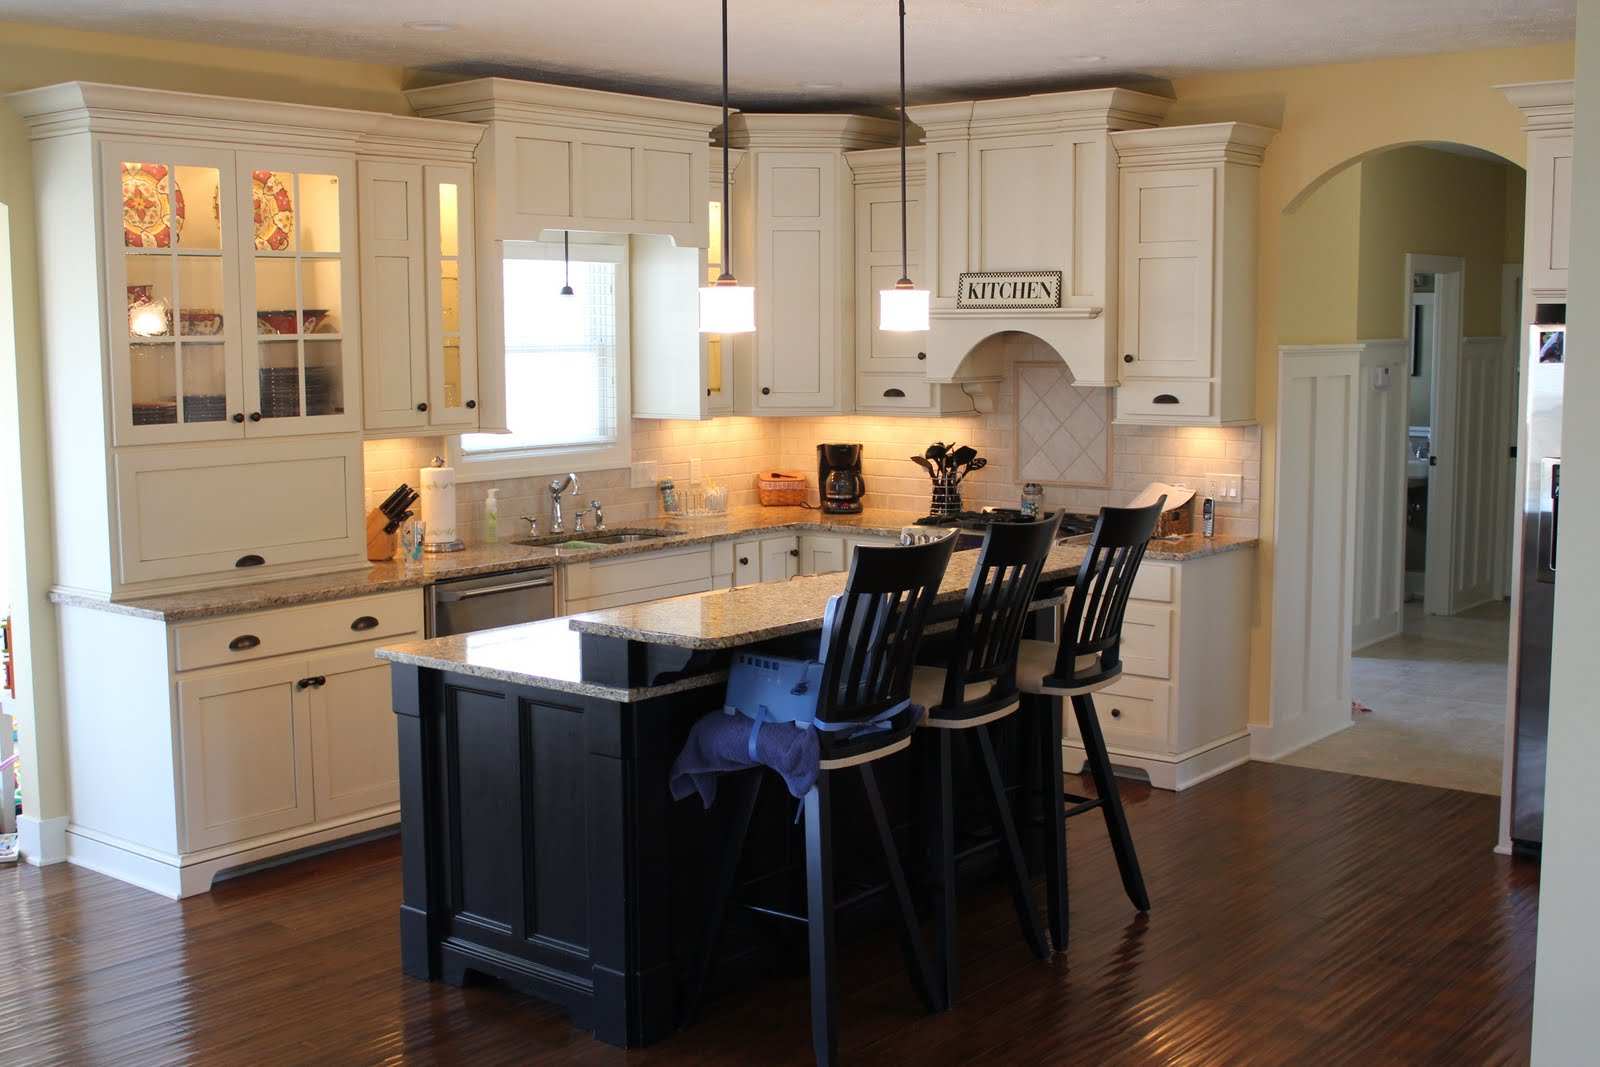 C b i d home decor and design looking for something warm - Benjamin moore colors for kitchen ...